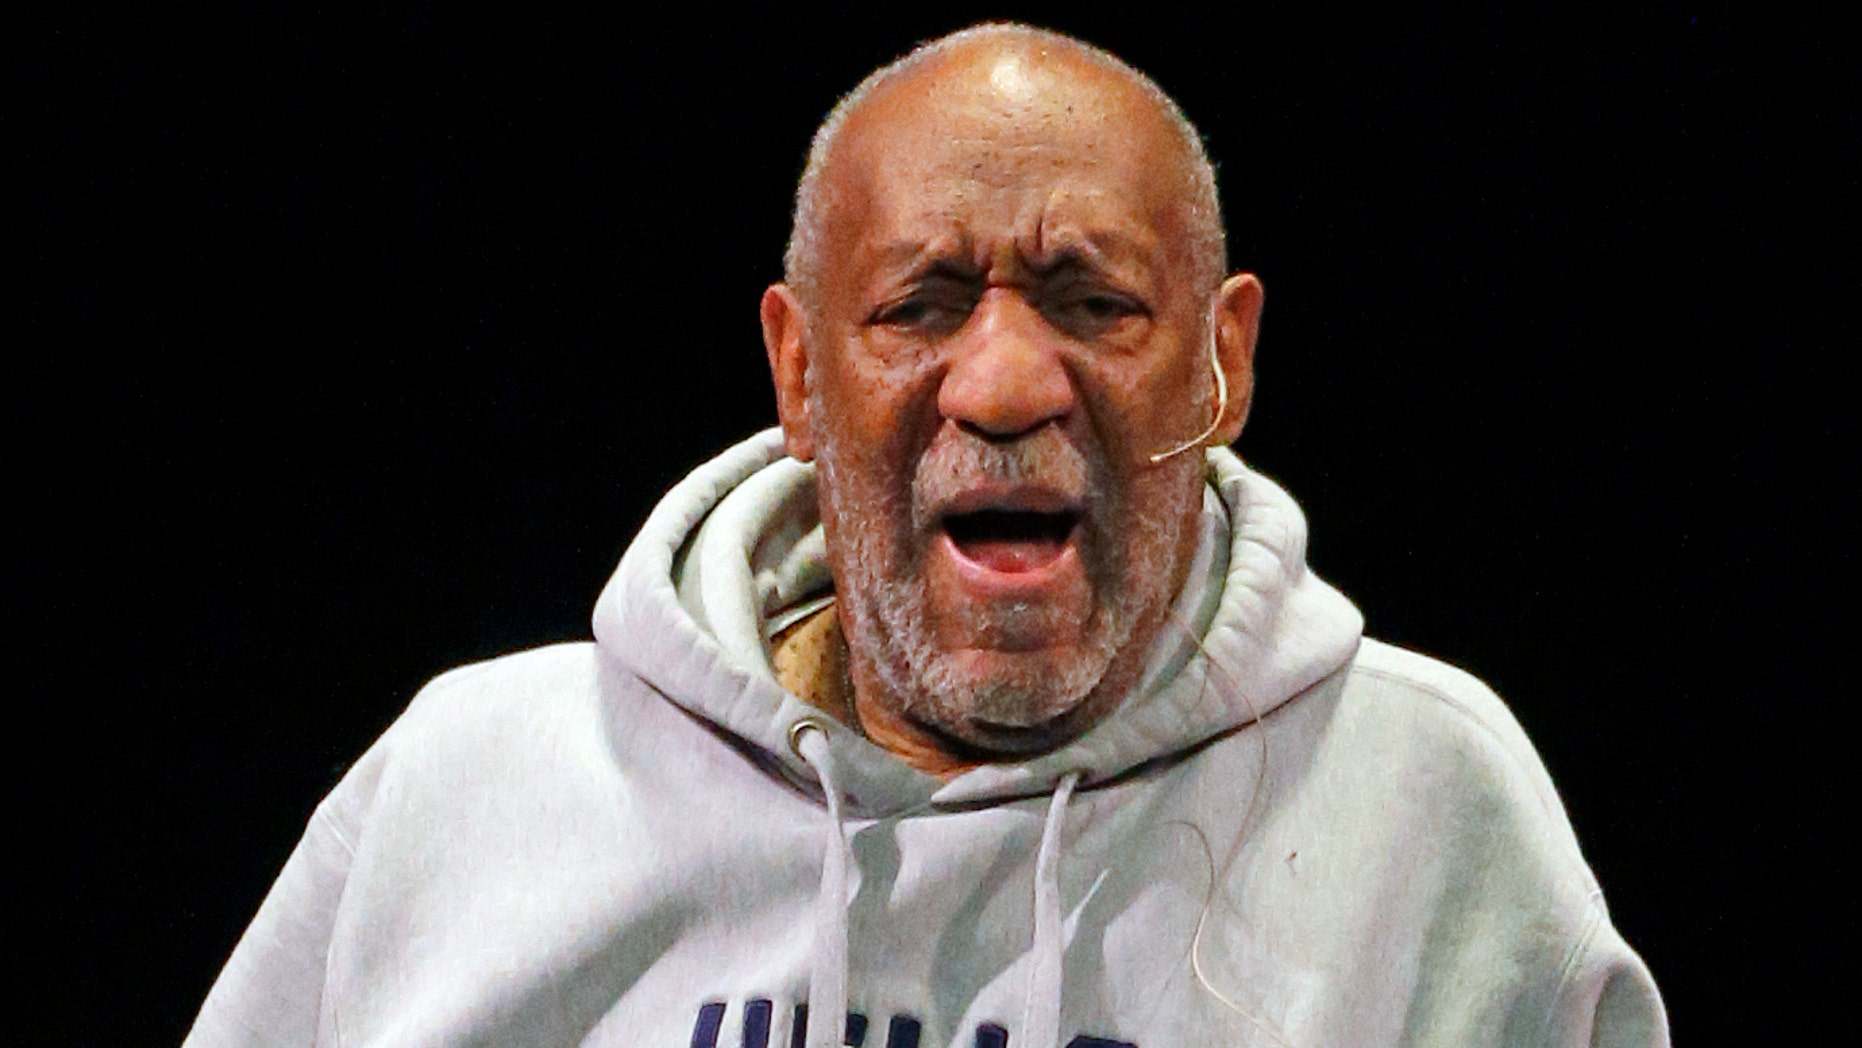 Jan. 17, 2015: Comedian Bill Cosby performs at the Buell Theater in Denver.